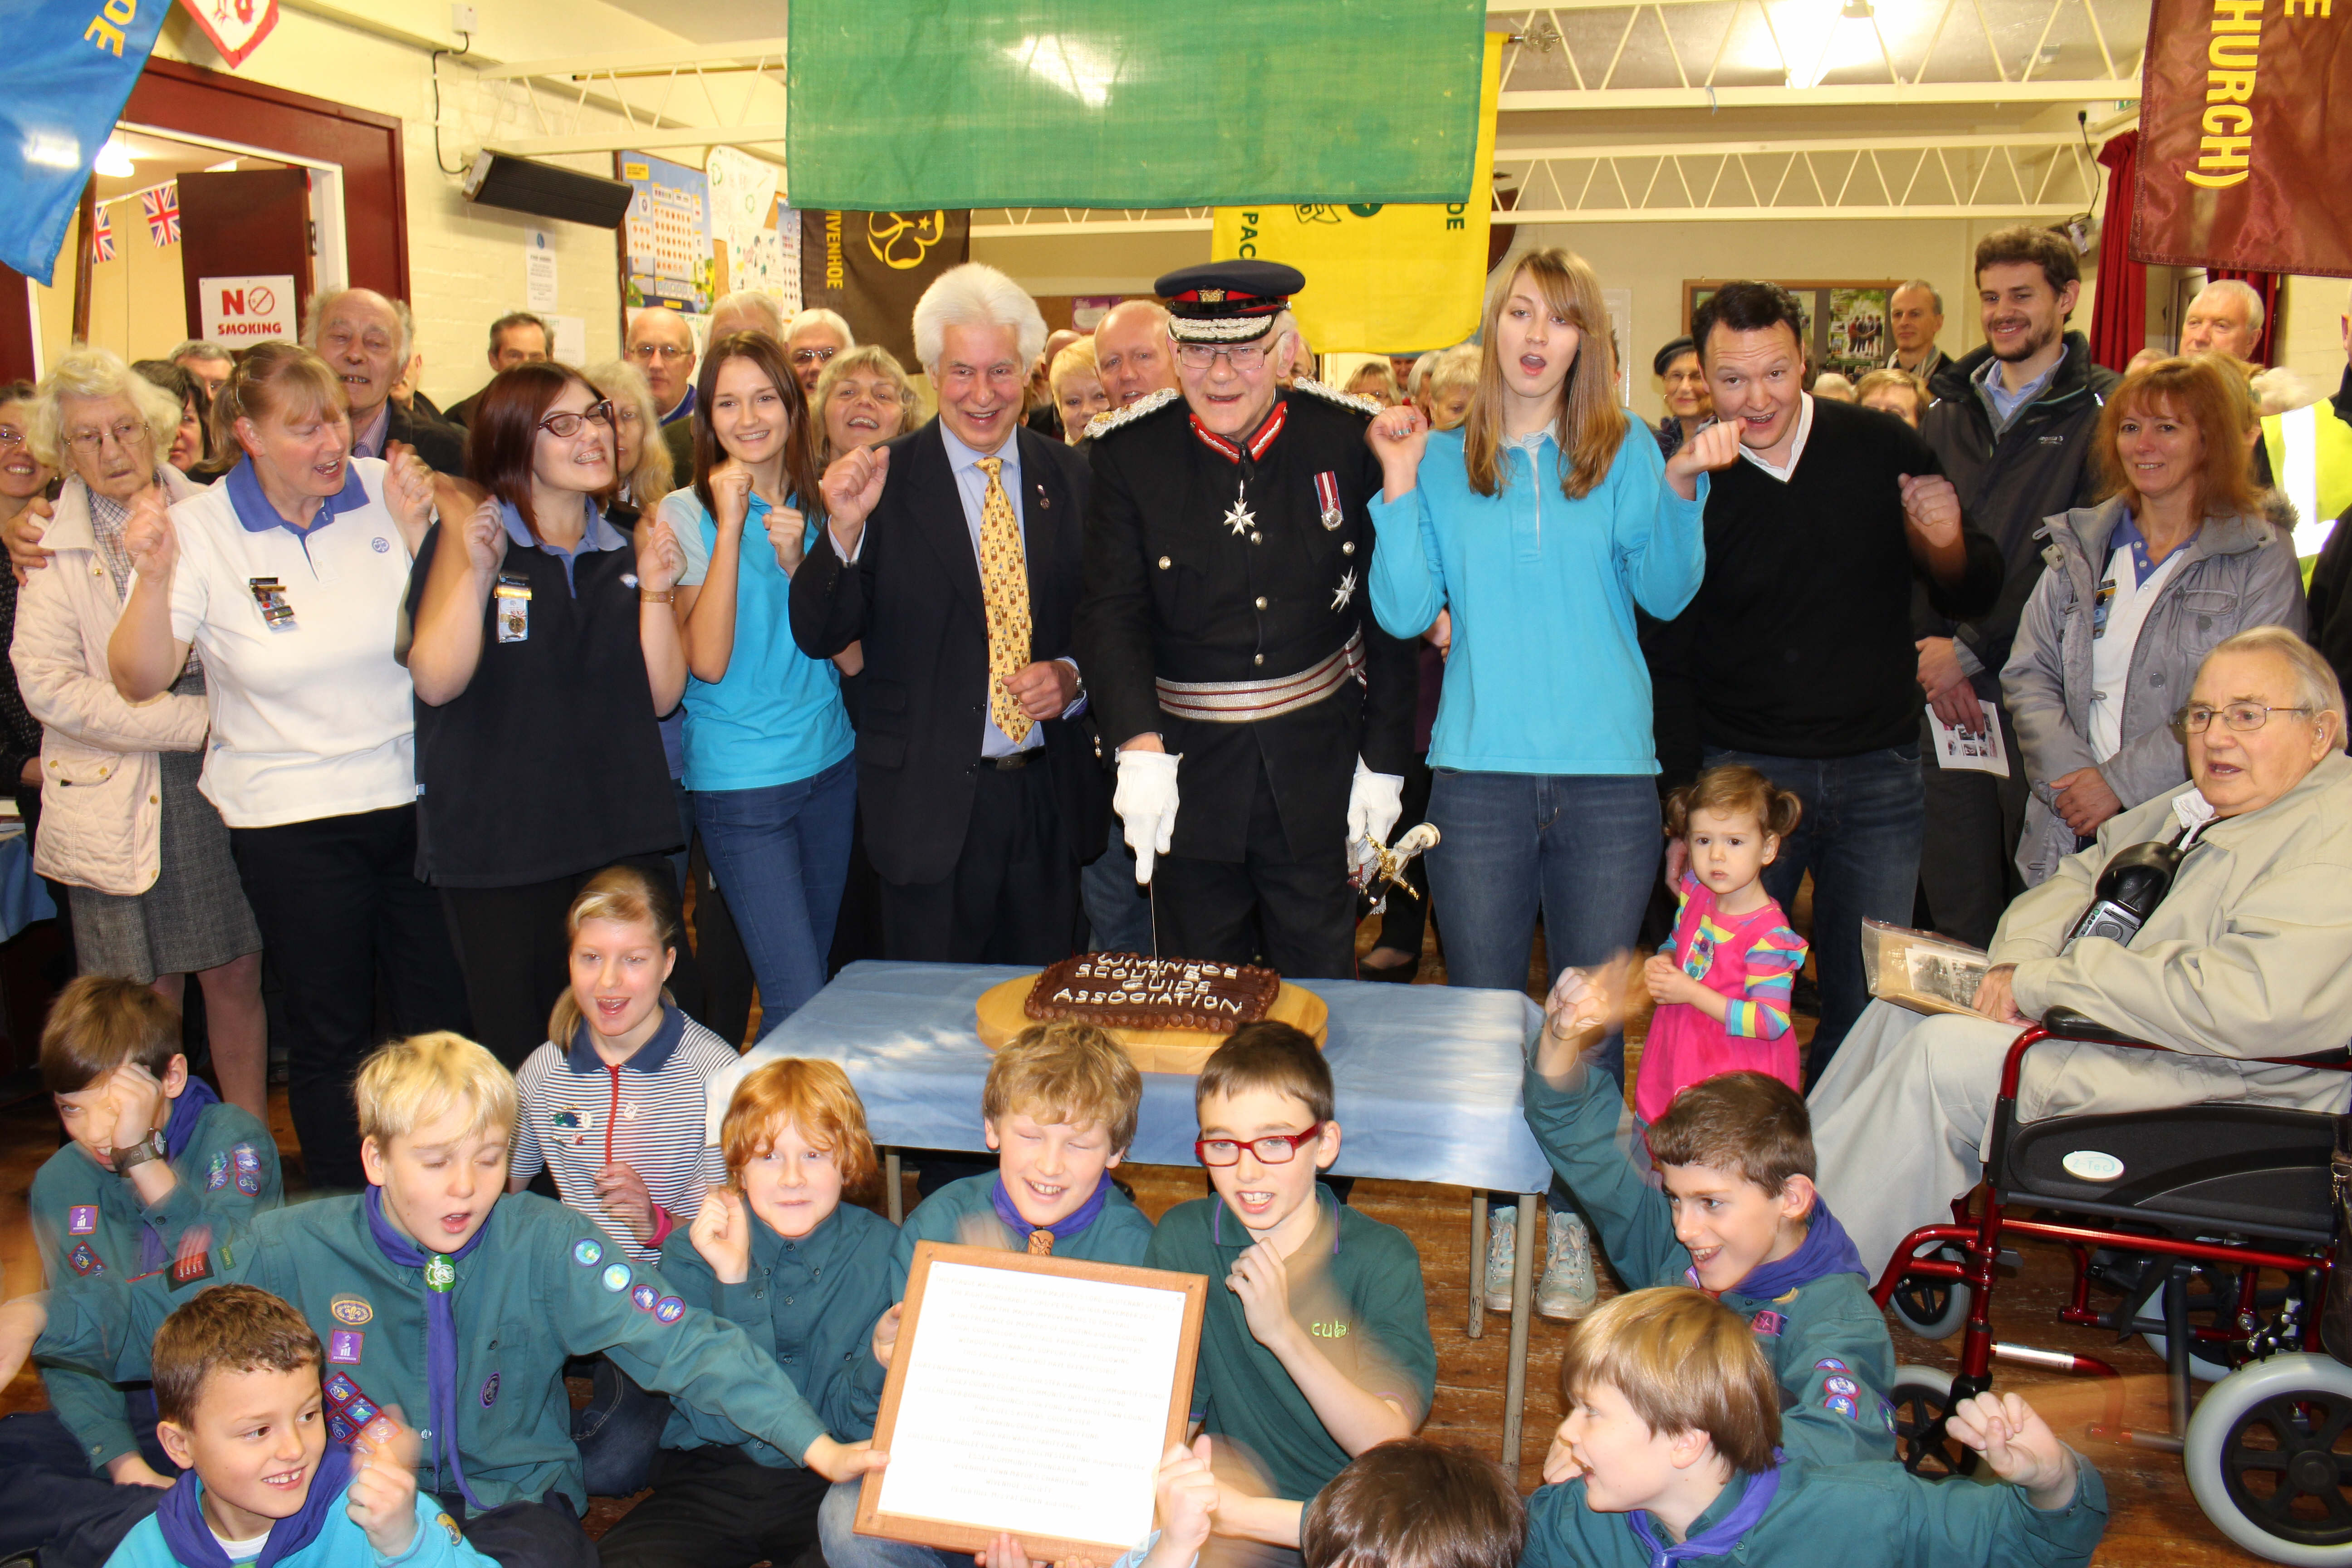 The cake being cut by Lord Petre, Lord Lieutenant of Essex with Peter Hill, Chairman of the Association, at the ceremony held on Sat 16th November 2013 to mark the completion of the Hall Refurbishment Project